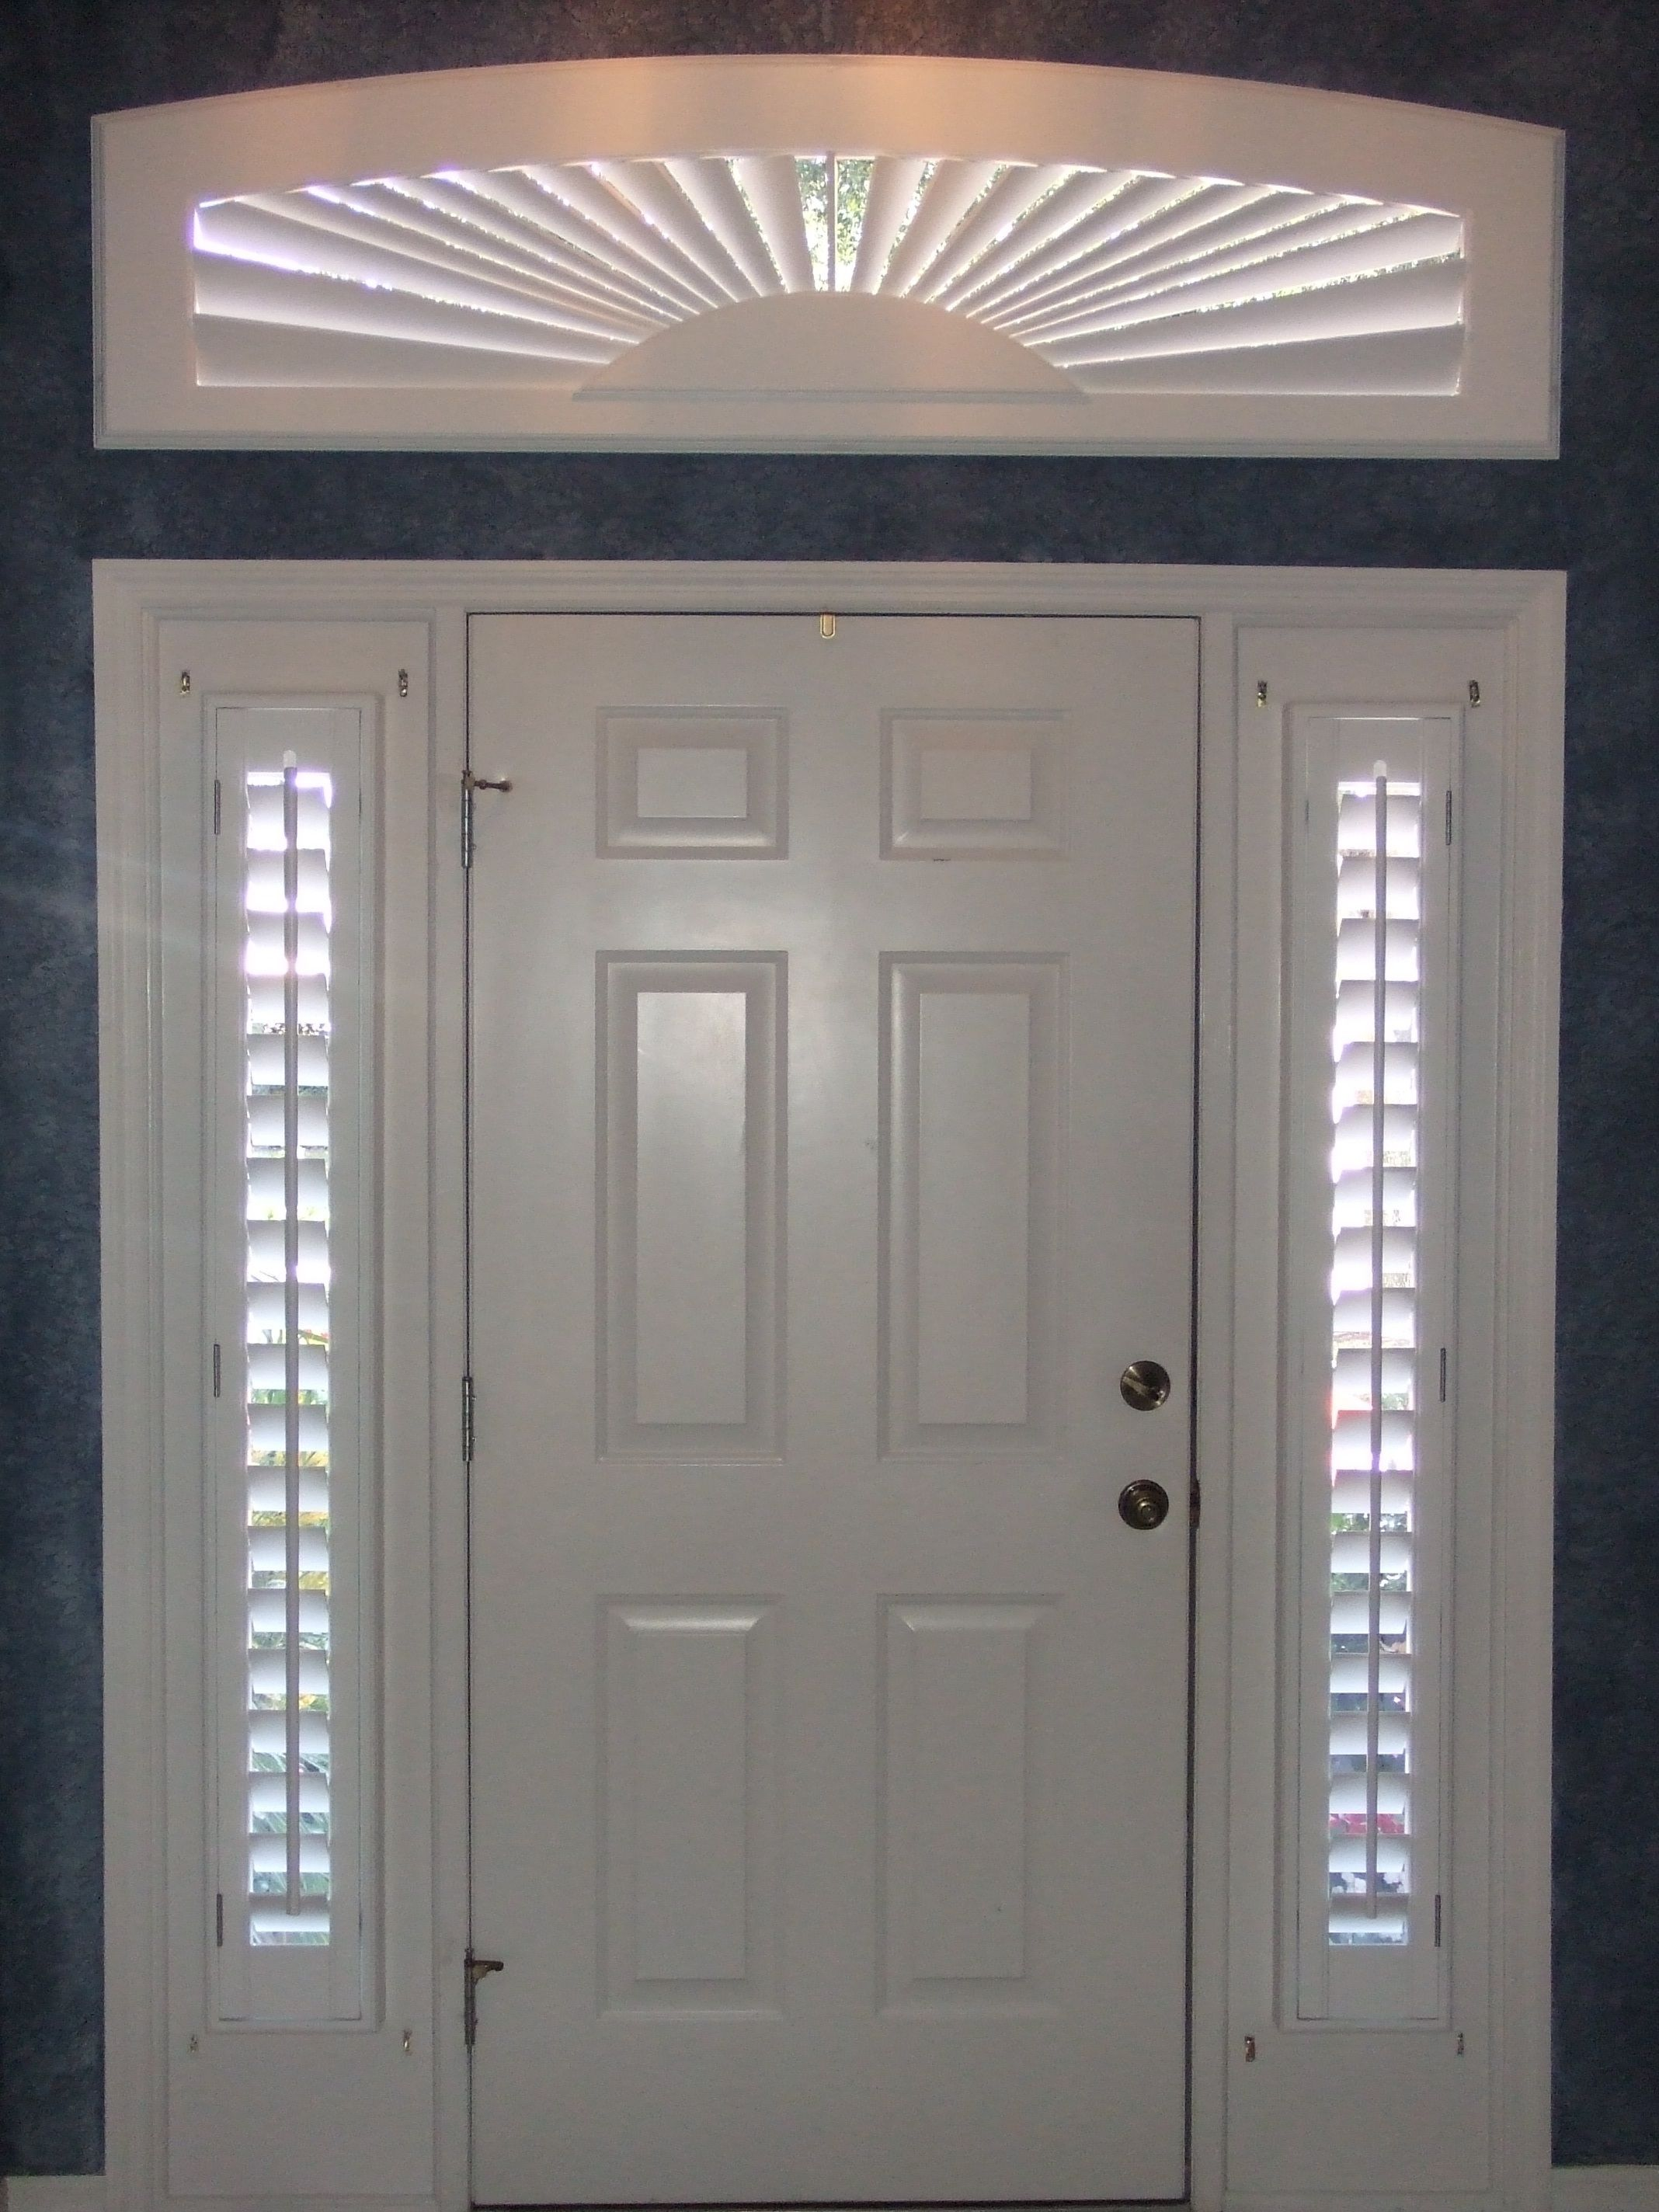 Shutters can be made to cover nearly any window shape like this arch